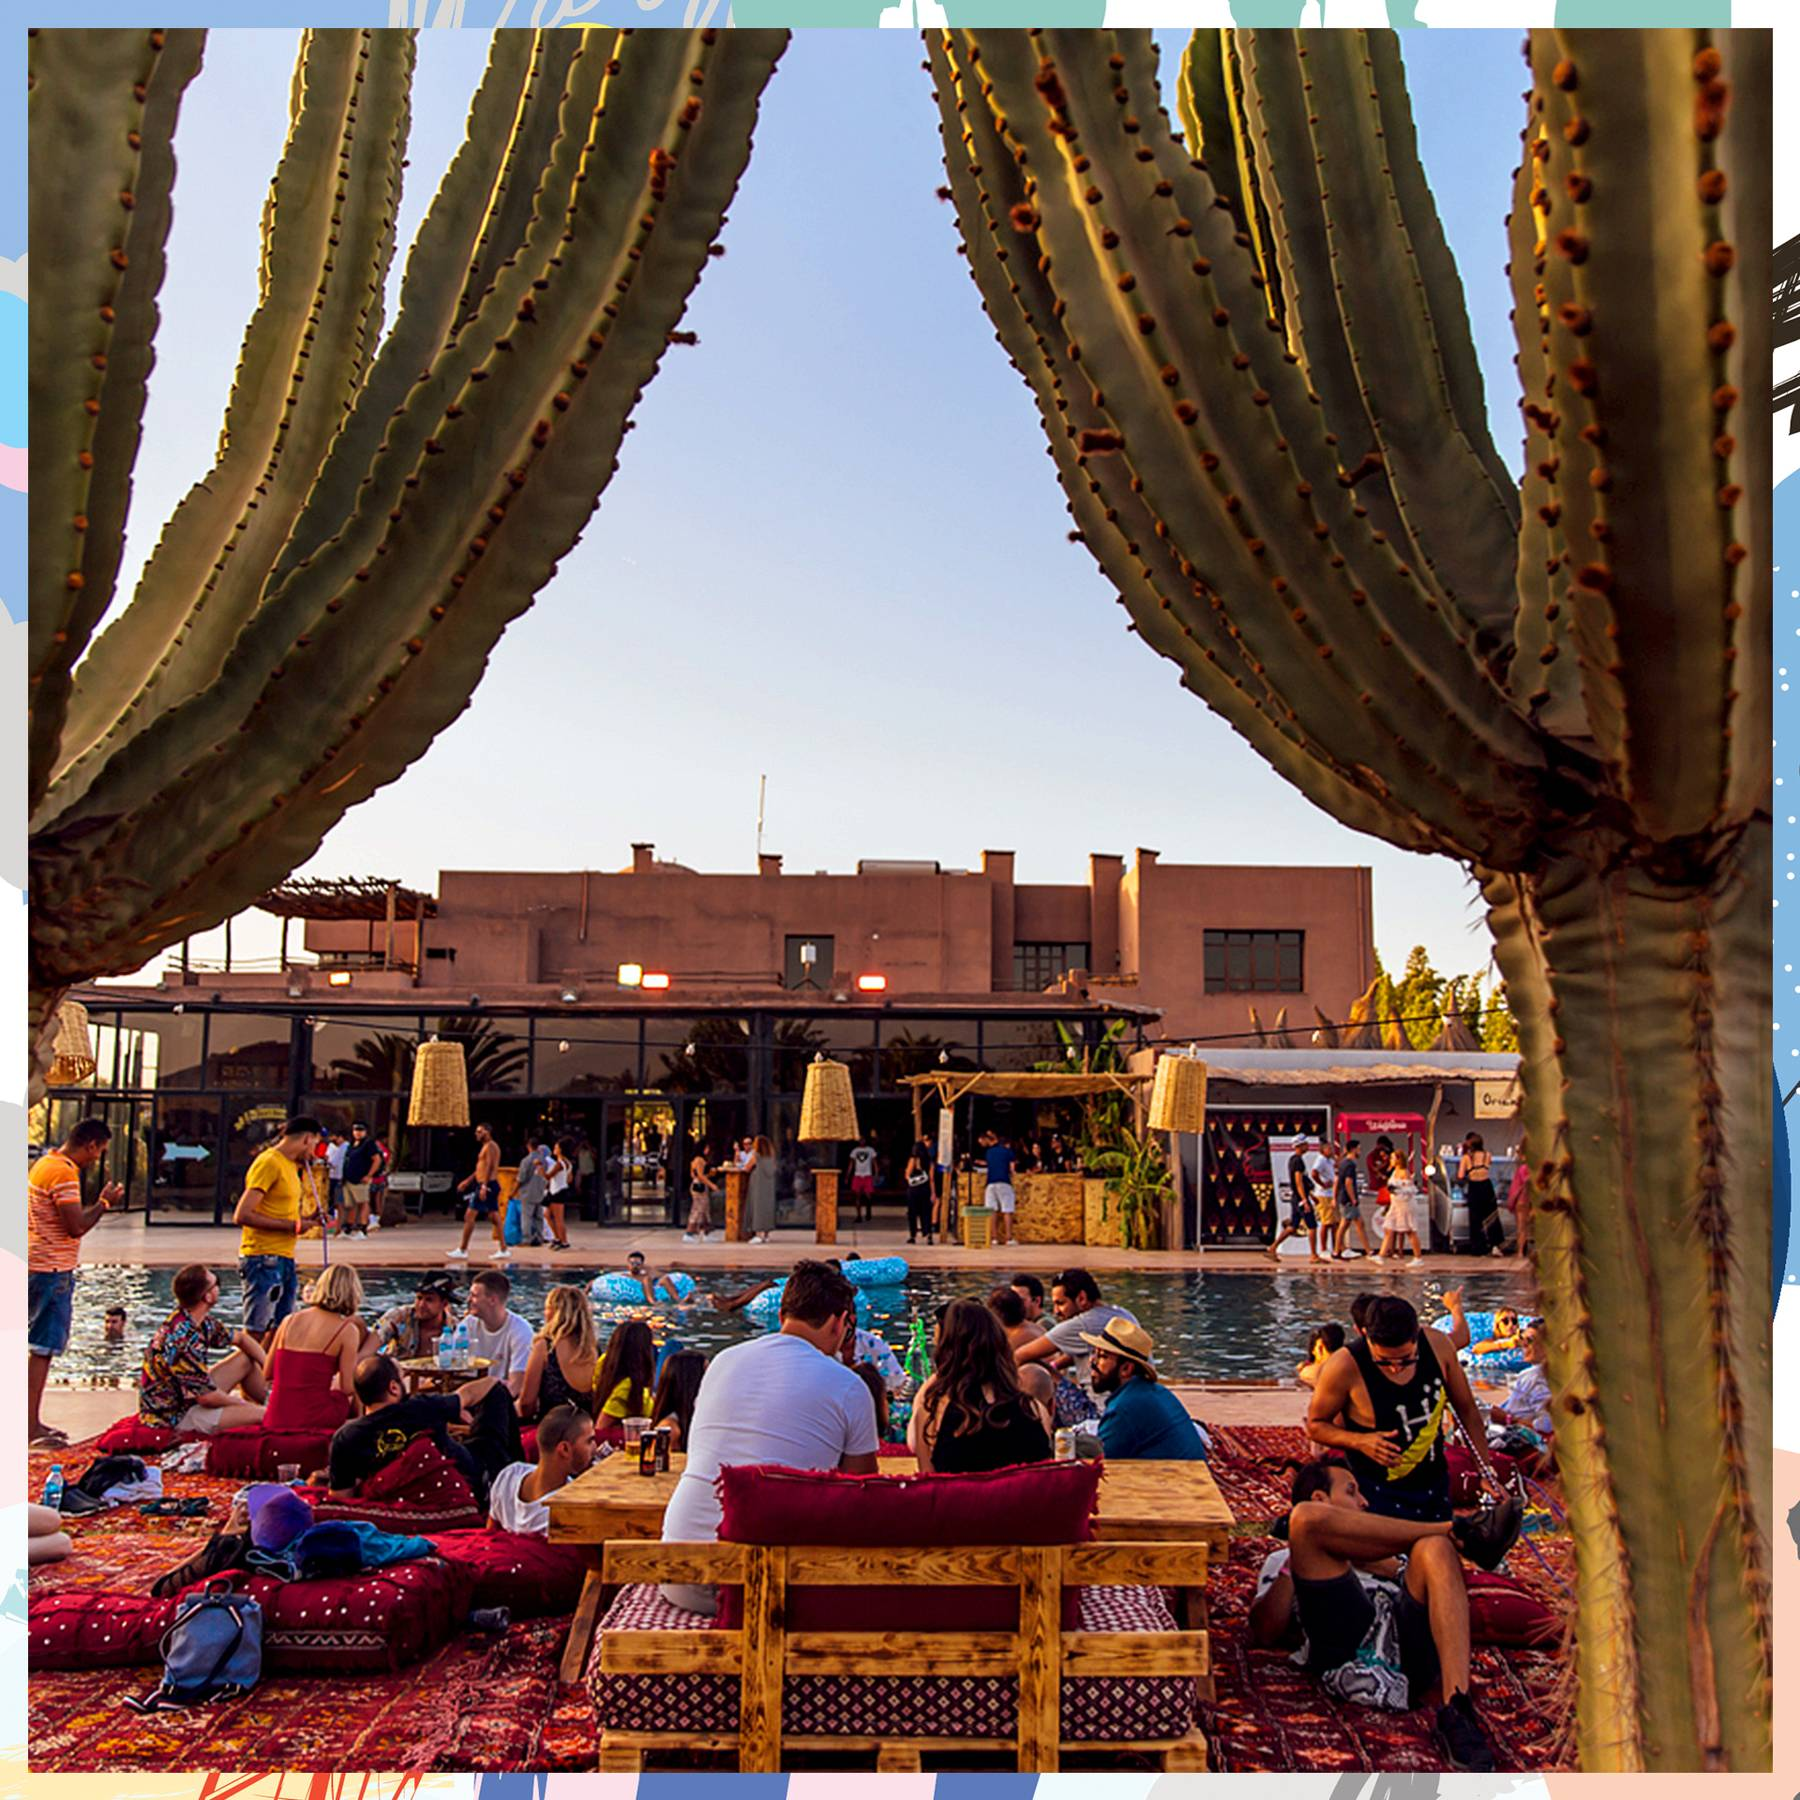 I mixed hedonism and hammam in Marrakech for the ultimate detox/retox holiday